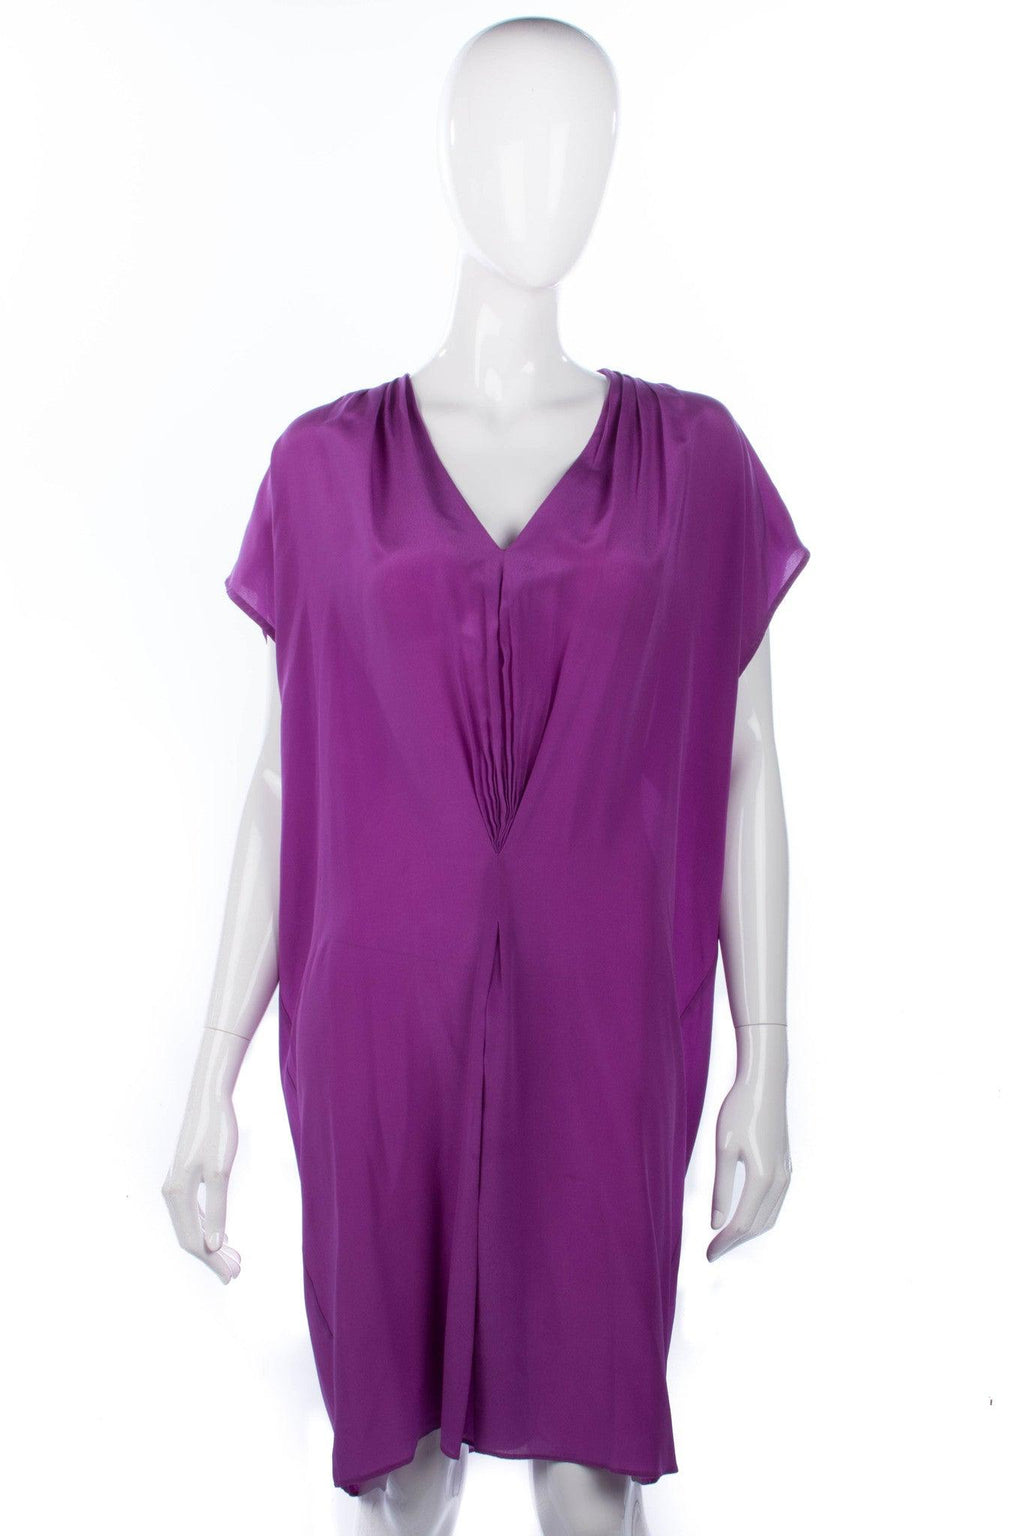 Birger Et Mikkelsen Woman silk dress size 14/16